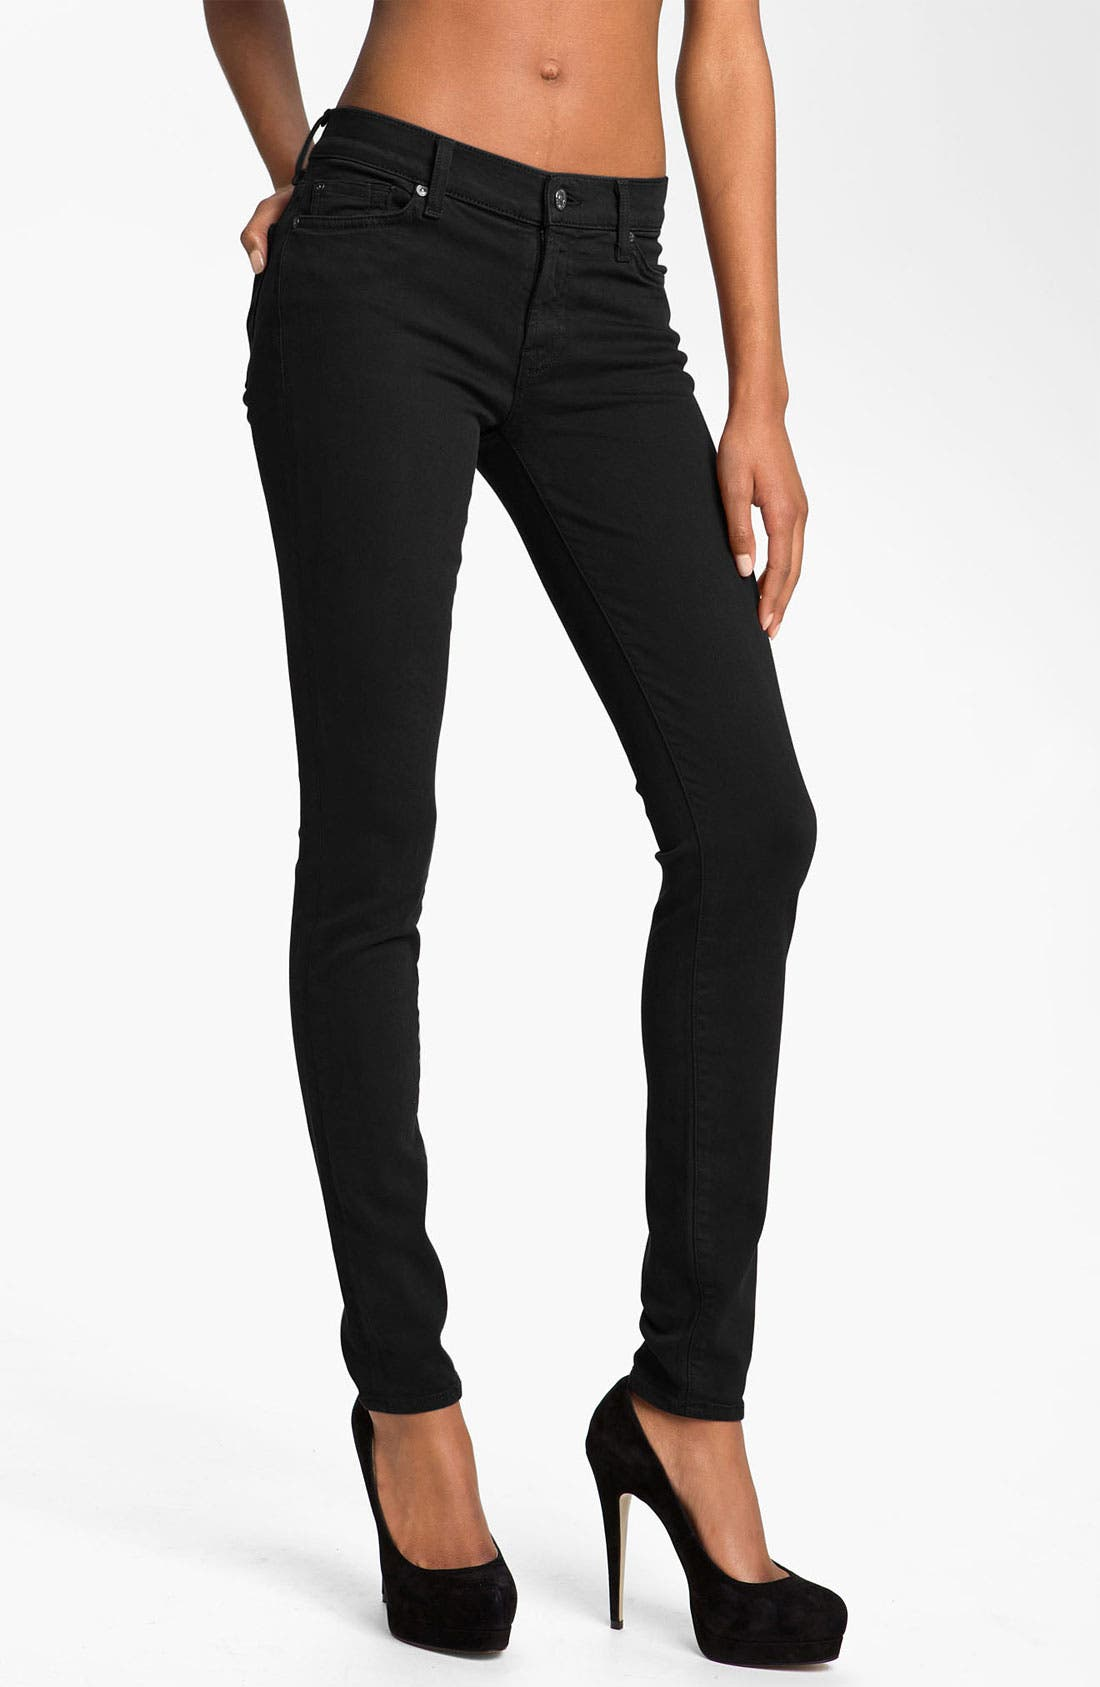 Alternate Image 1 Selected - 7 For All Mankind® 'Slim Illusion' Overdyed Skinny Stretch Jeans (Black)